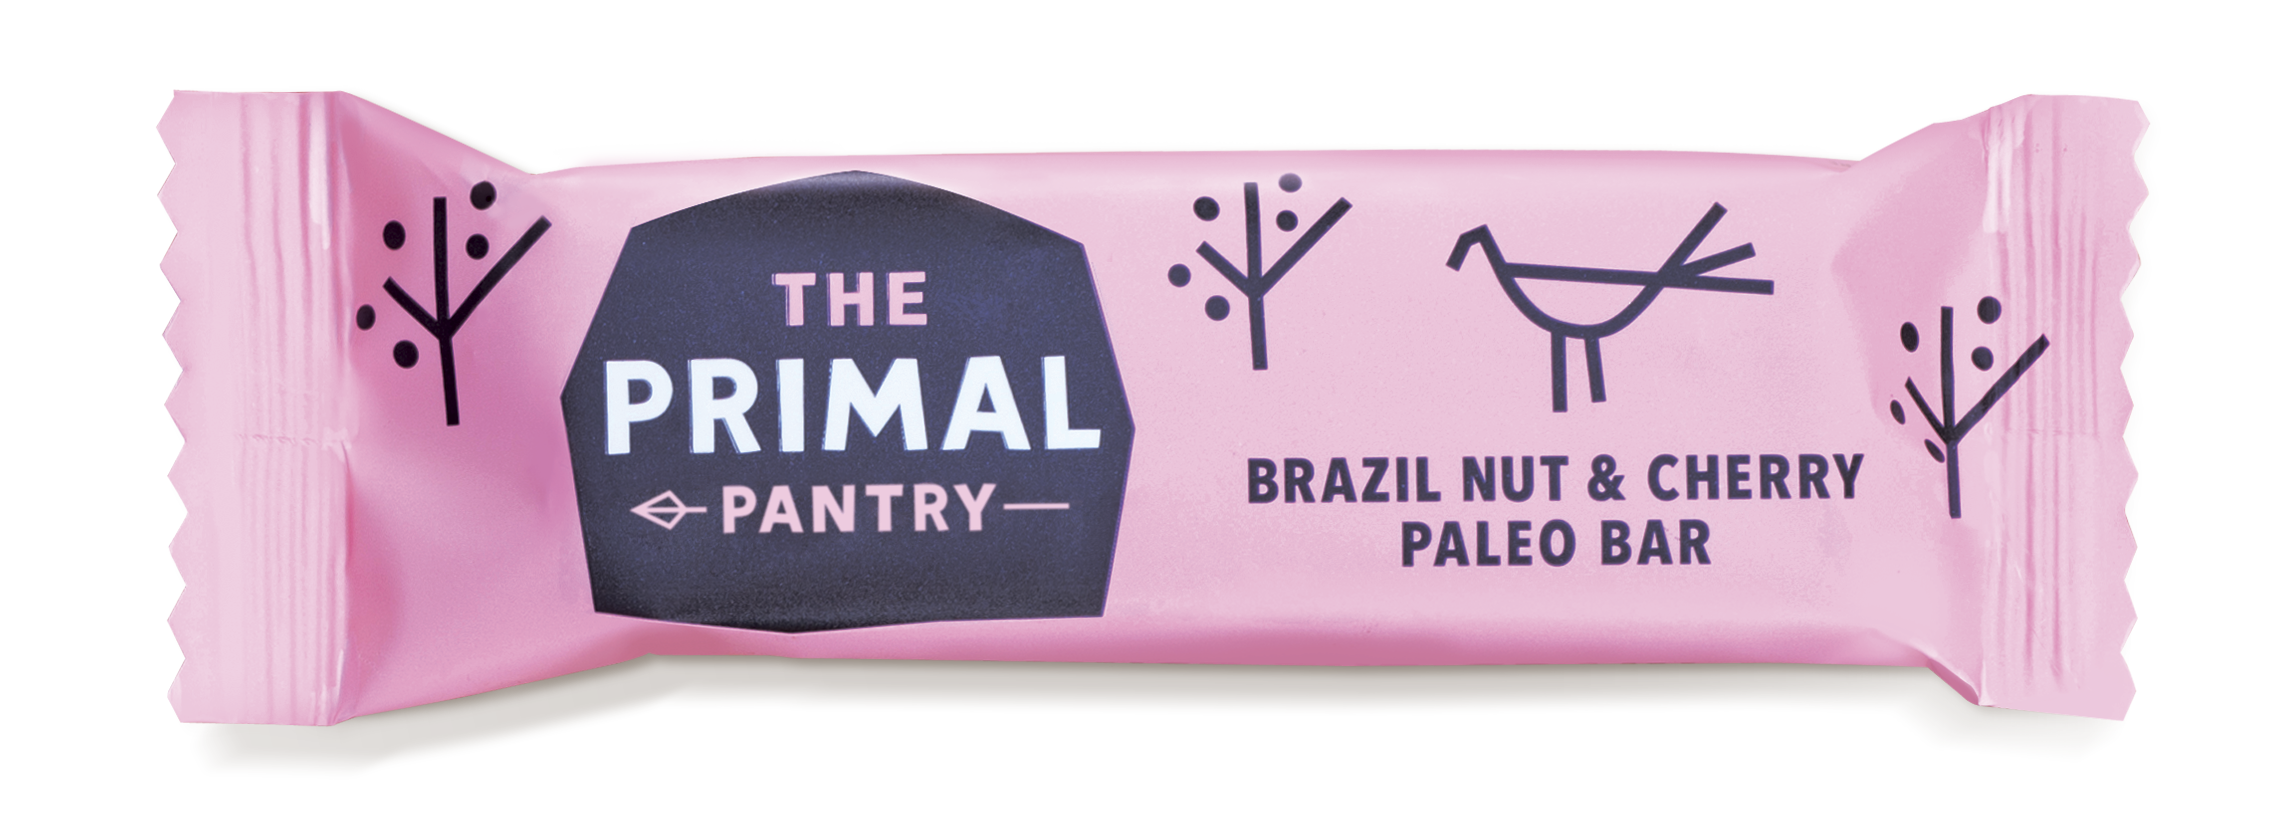 Brazilnut_Bar.png